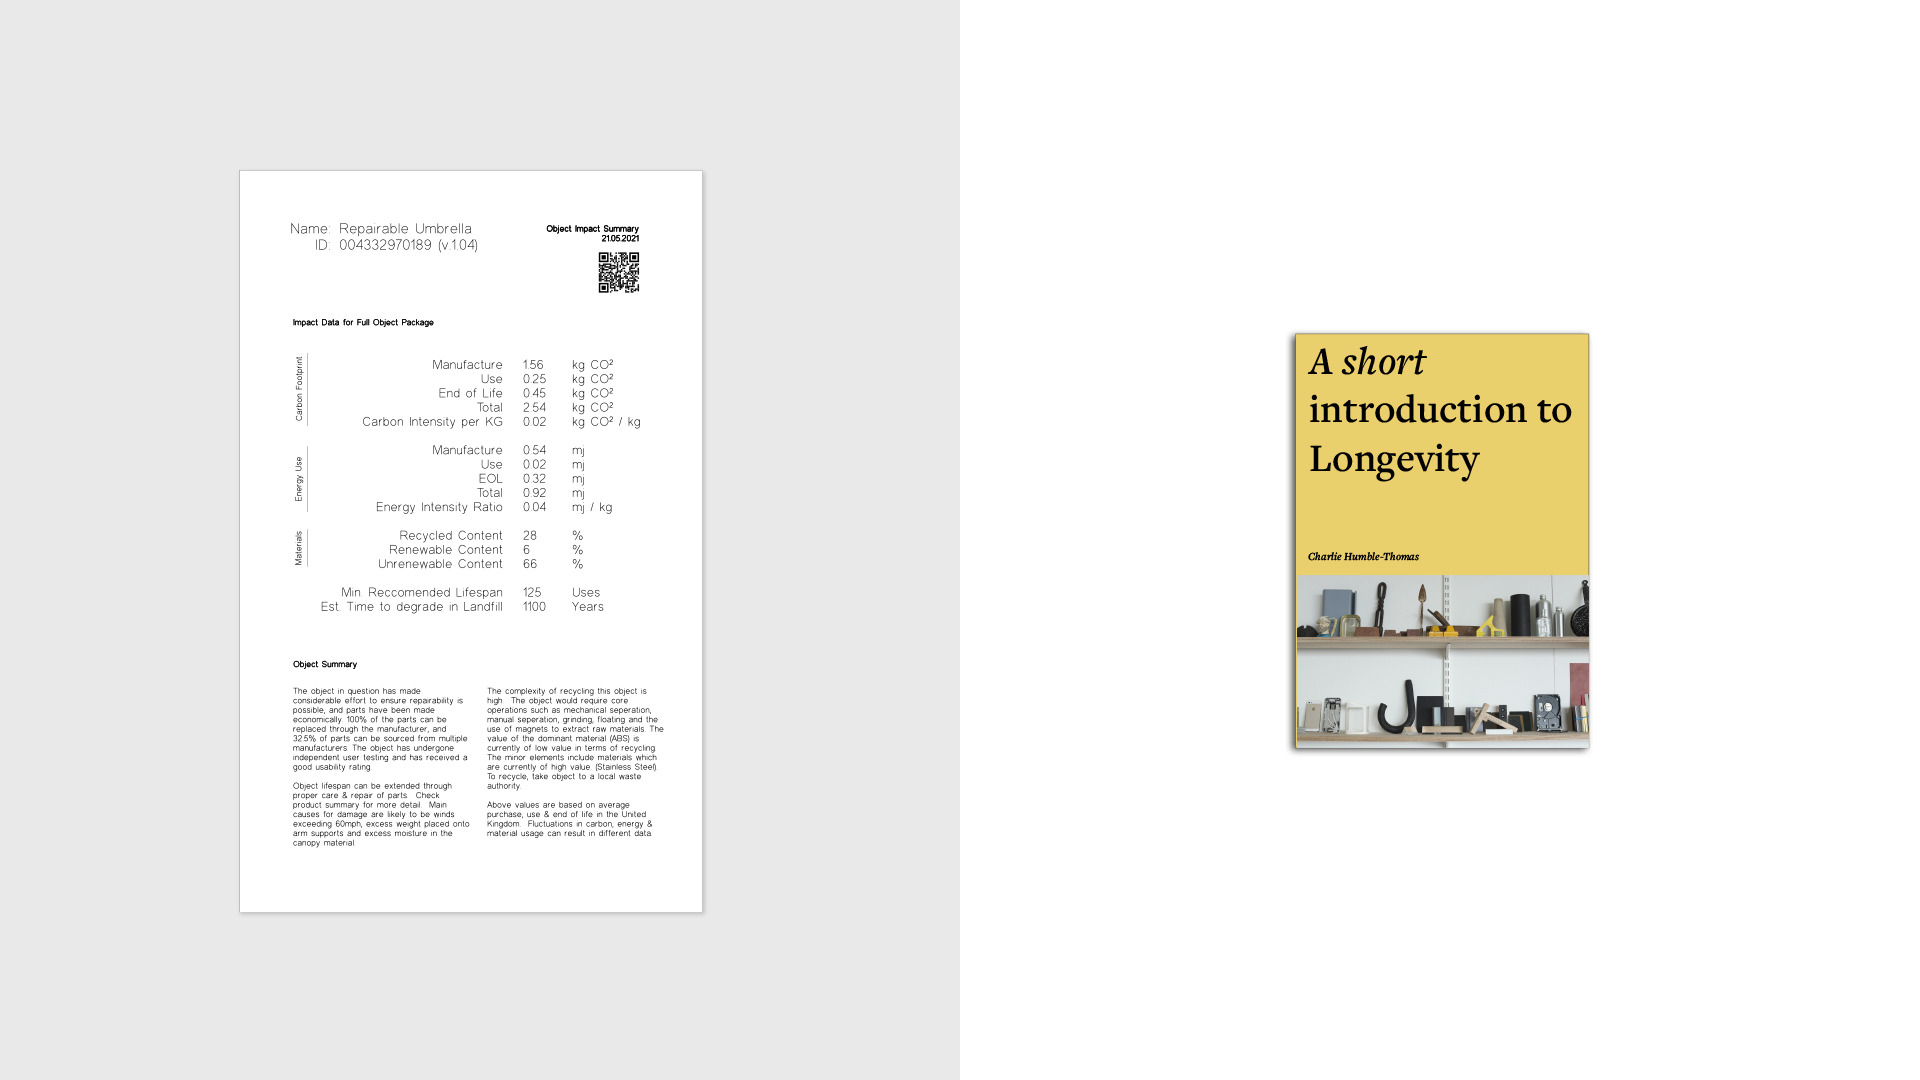 Left: Draft of a data & description based 'Impact summaries' for objects.  Right: A book to introduce the concept of Longevity.